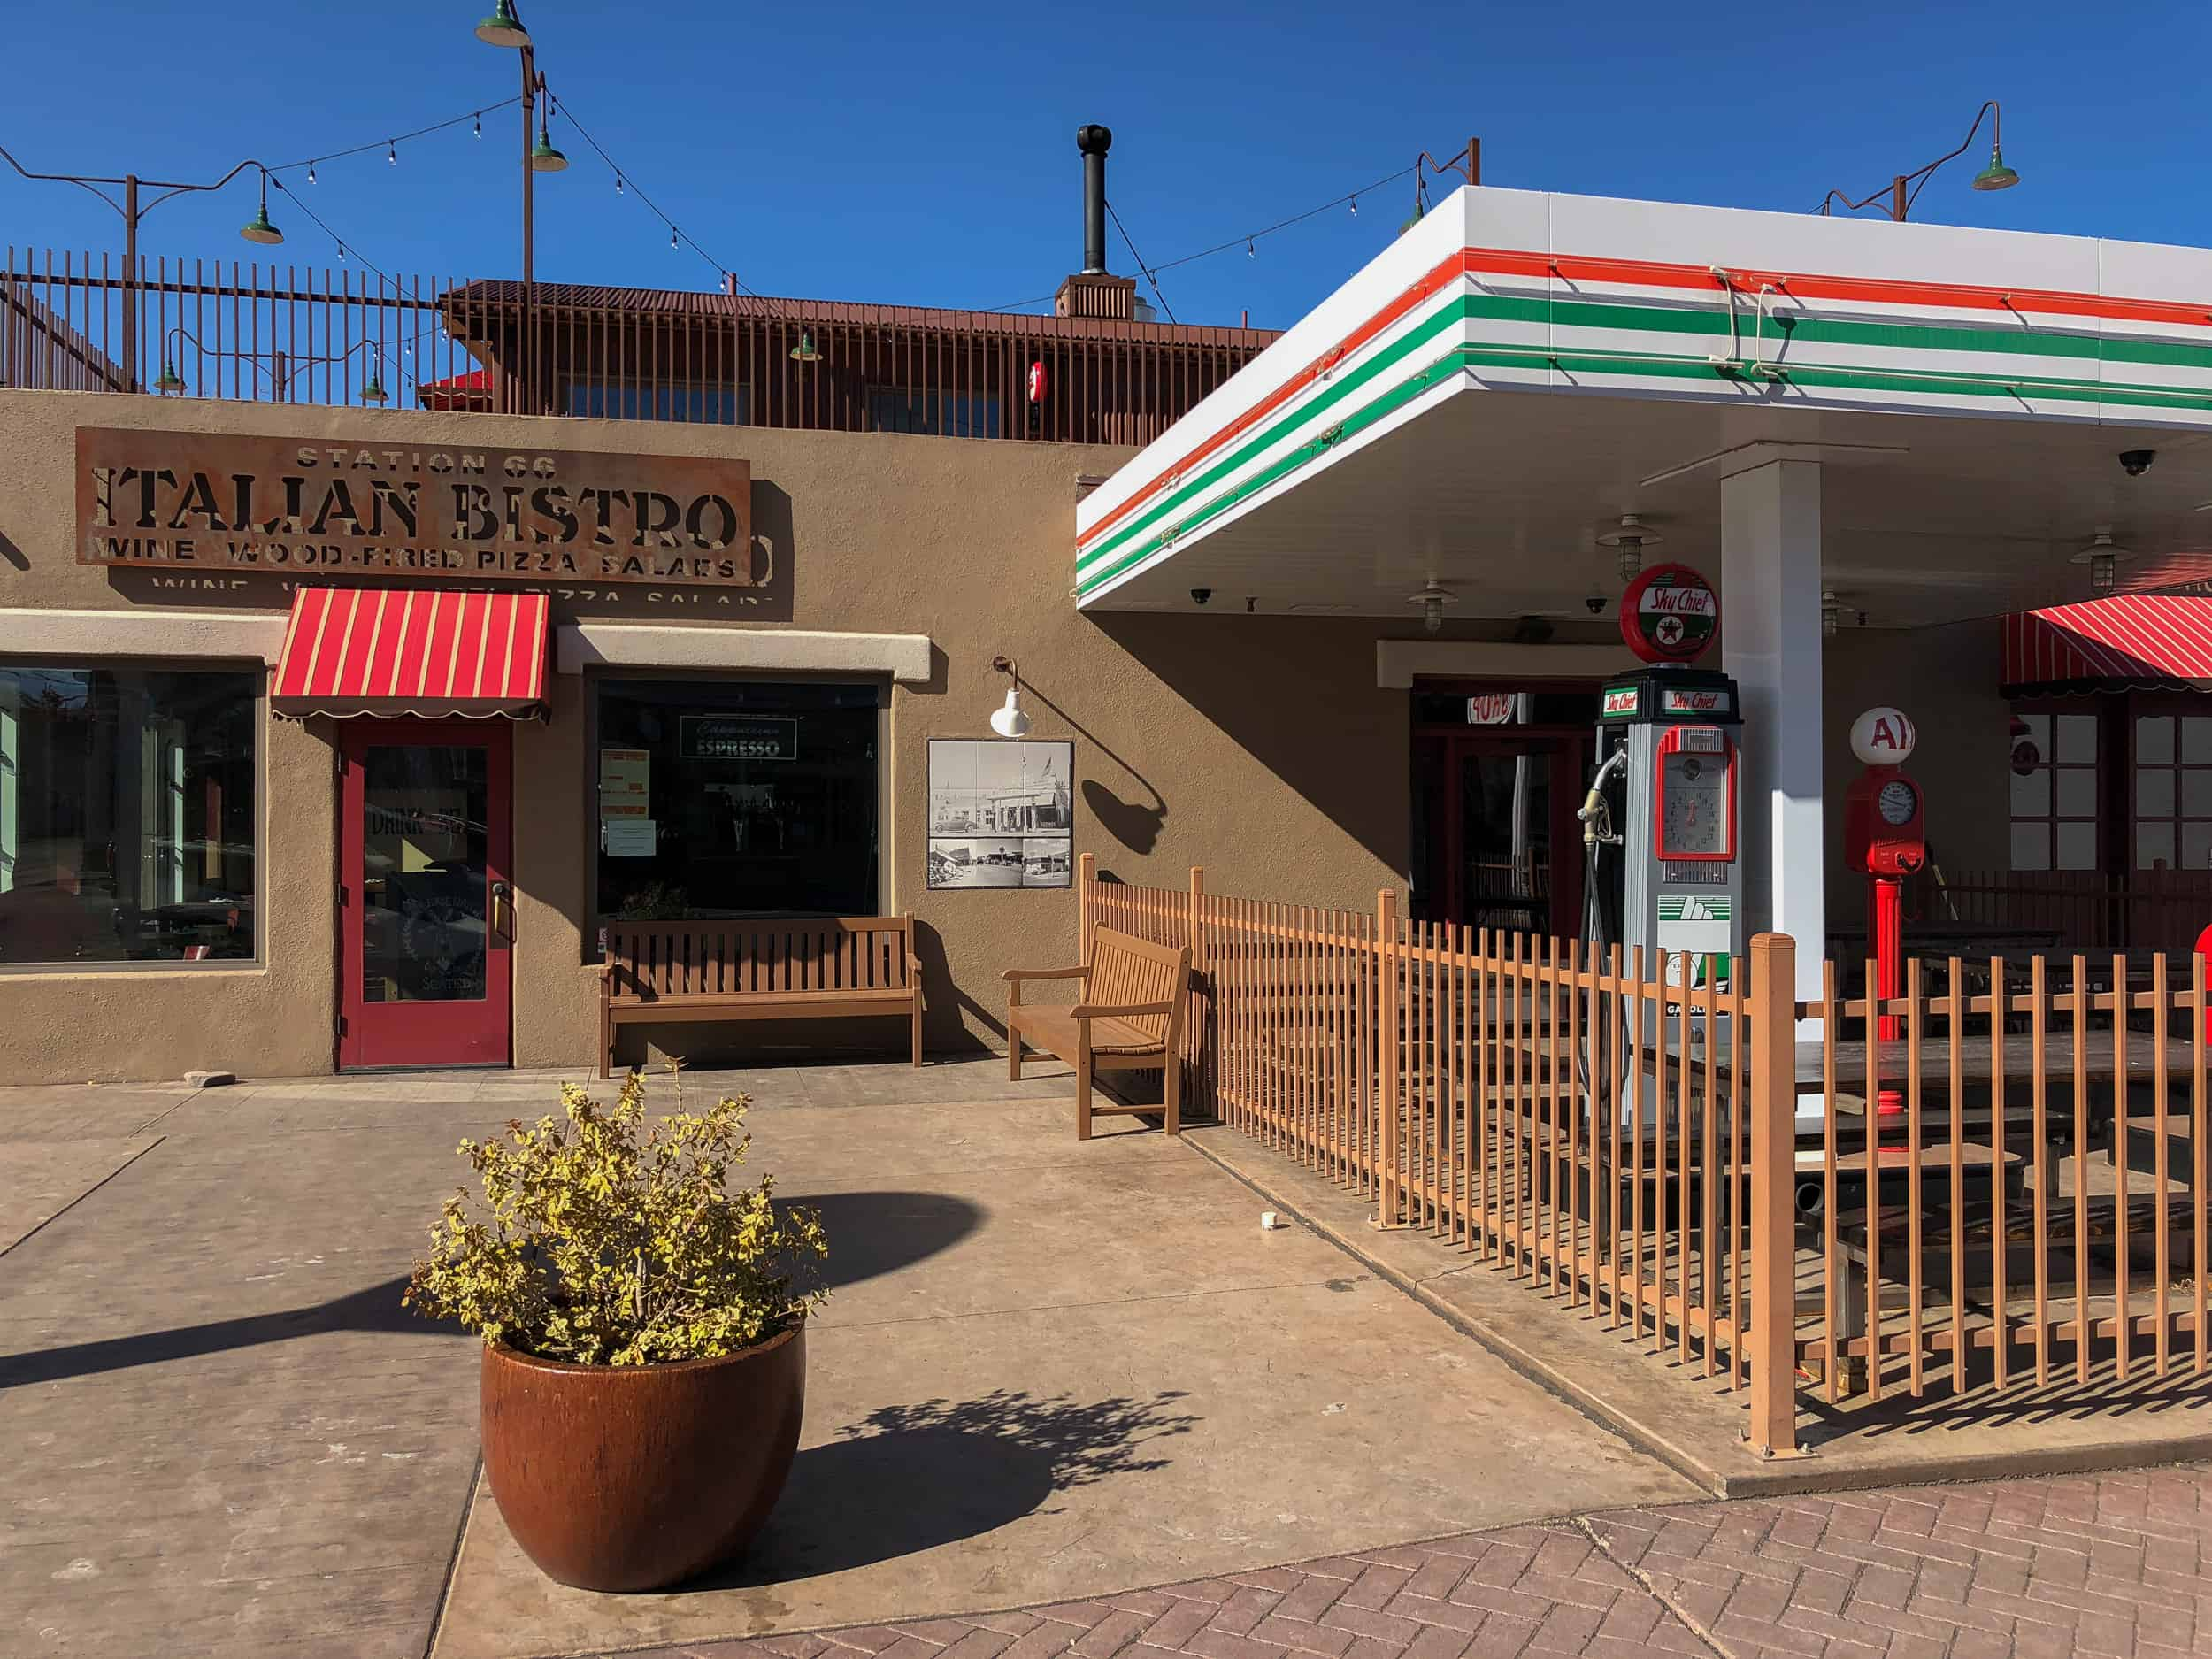 Bistro Italian Restaurant Station 66 Italian Bistro Williams Restaurant Grand Canyon Deals